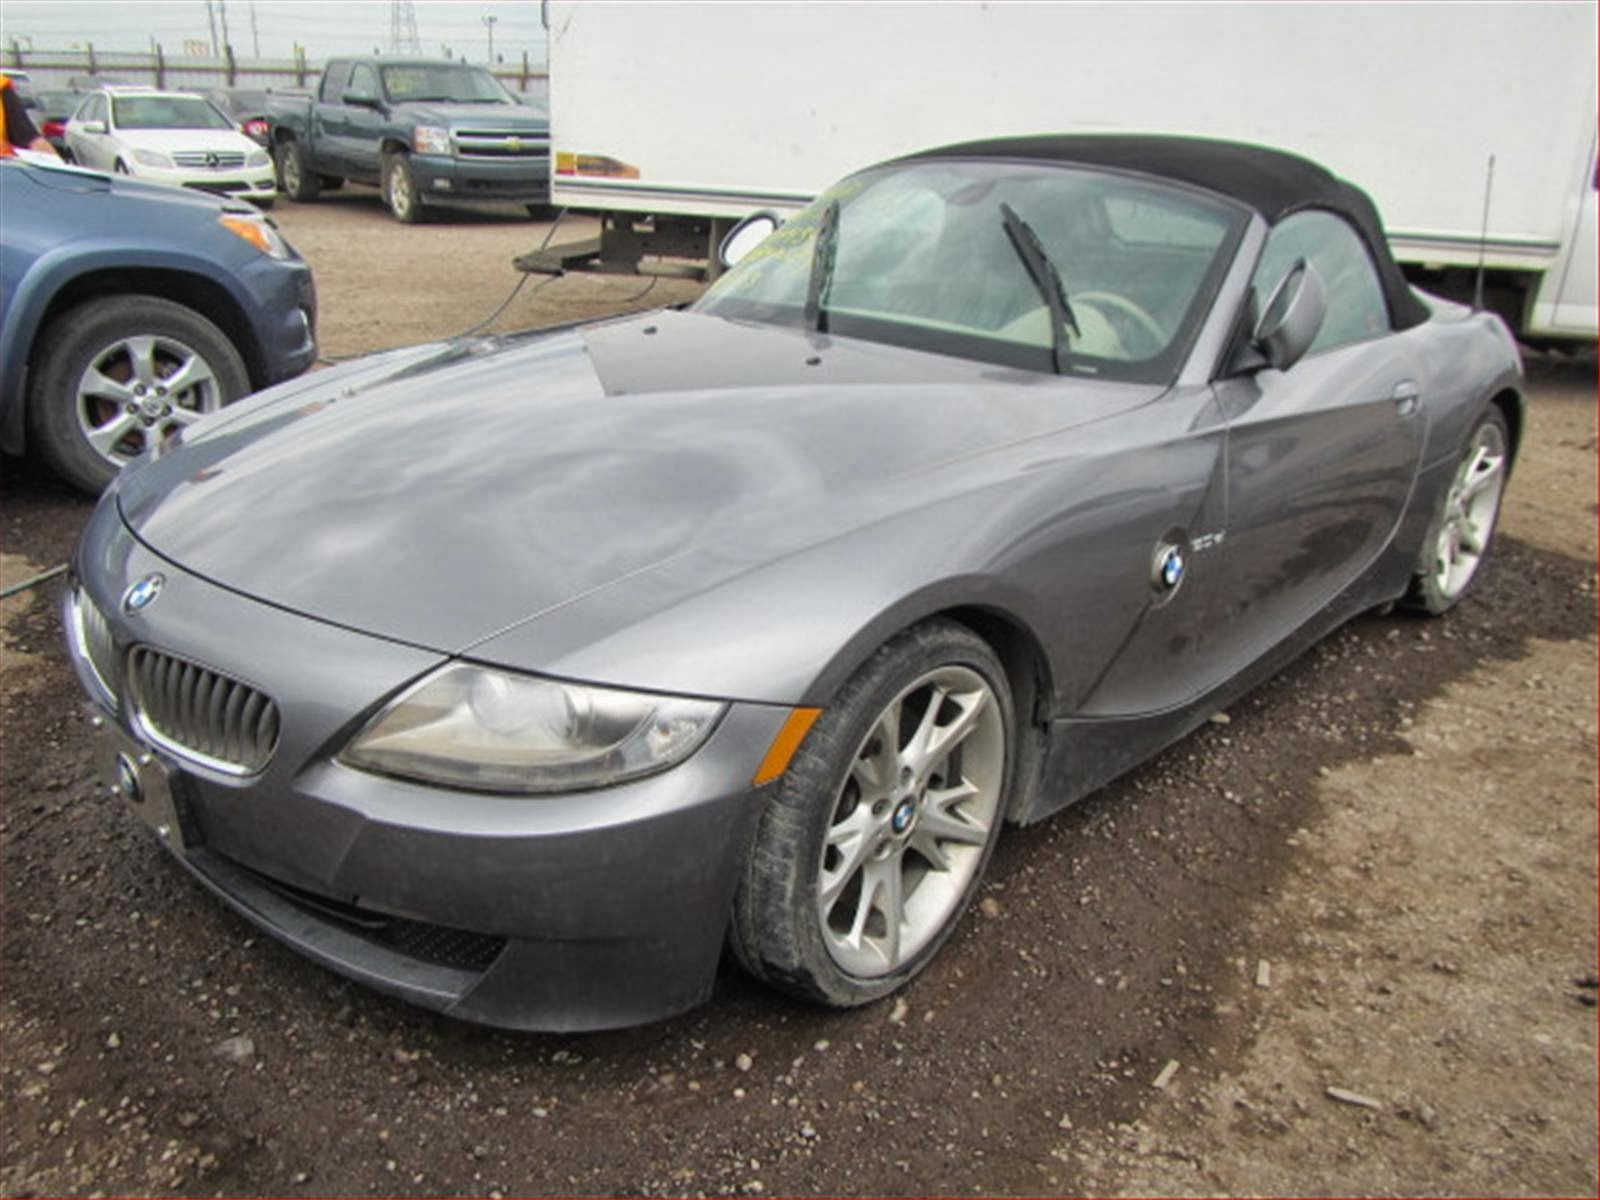 Mostly German Auto Recycling 2008 Bmw Z4 Transmission